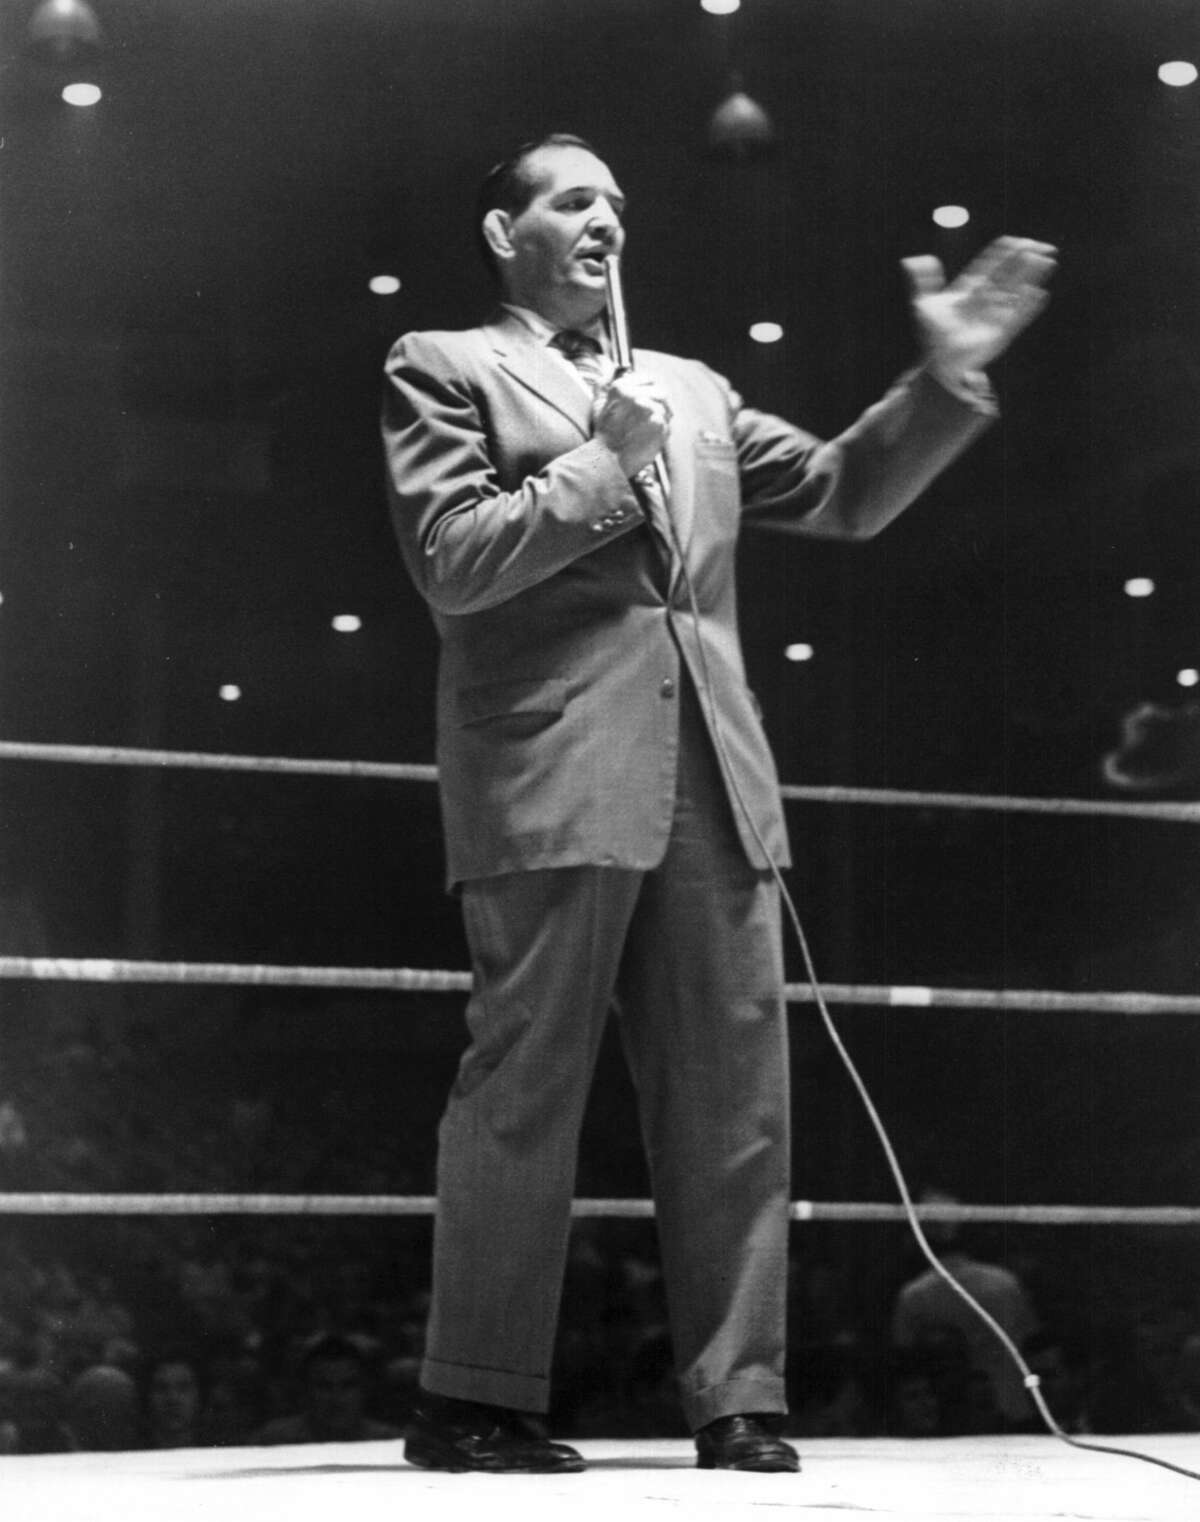 December 1961: With wrestling personality Paul Boesch making the appeal at the final matches of the season, fans gave almost $500 to The Chronicle Goodfellow program to provide new Christmas toys and candy for Houston's needy children. Both Boesch and sports promoter Morris Sigel, who sweetened the pot with his own donation of $100, are traditional Goodfellows boosters.